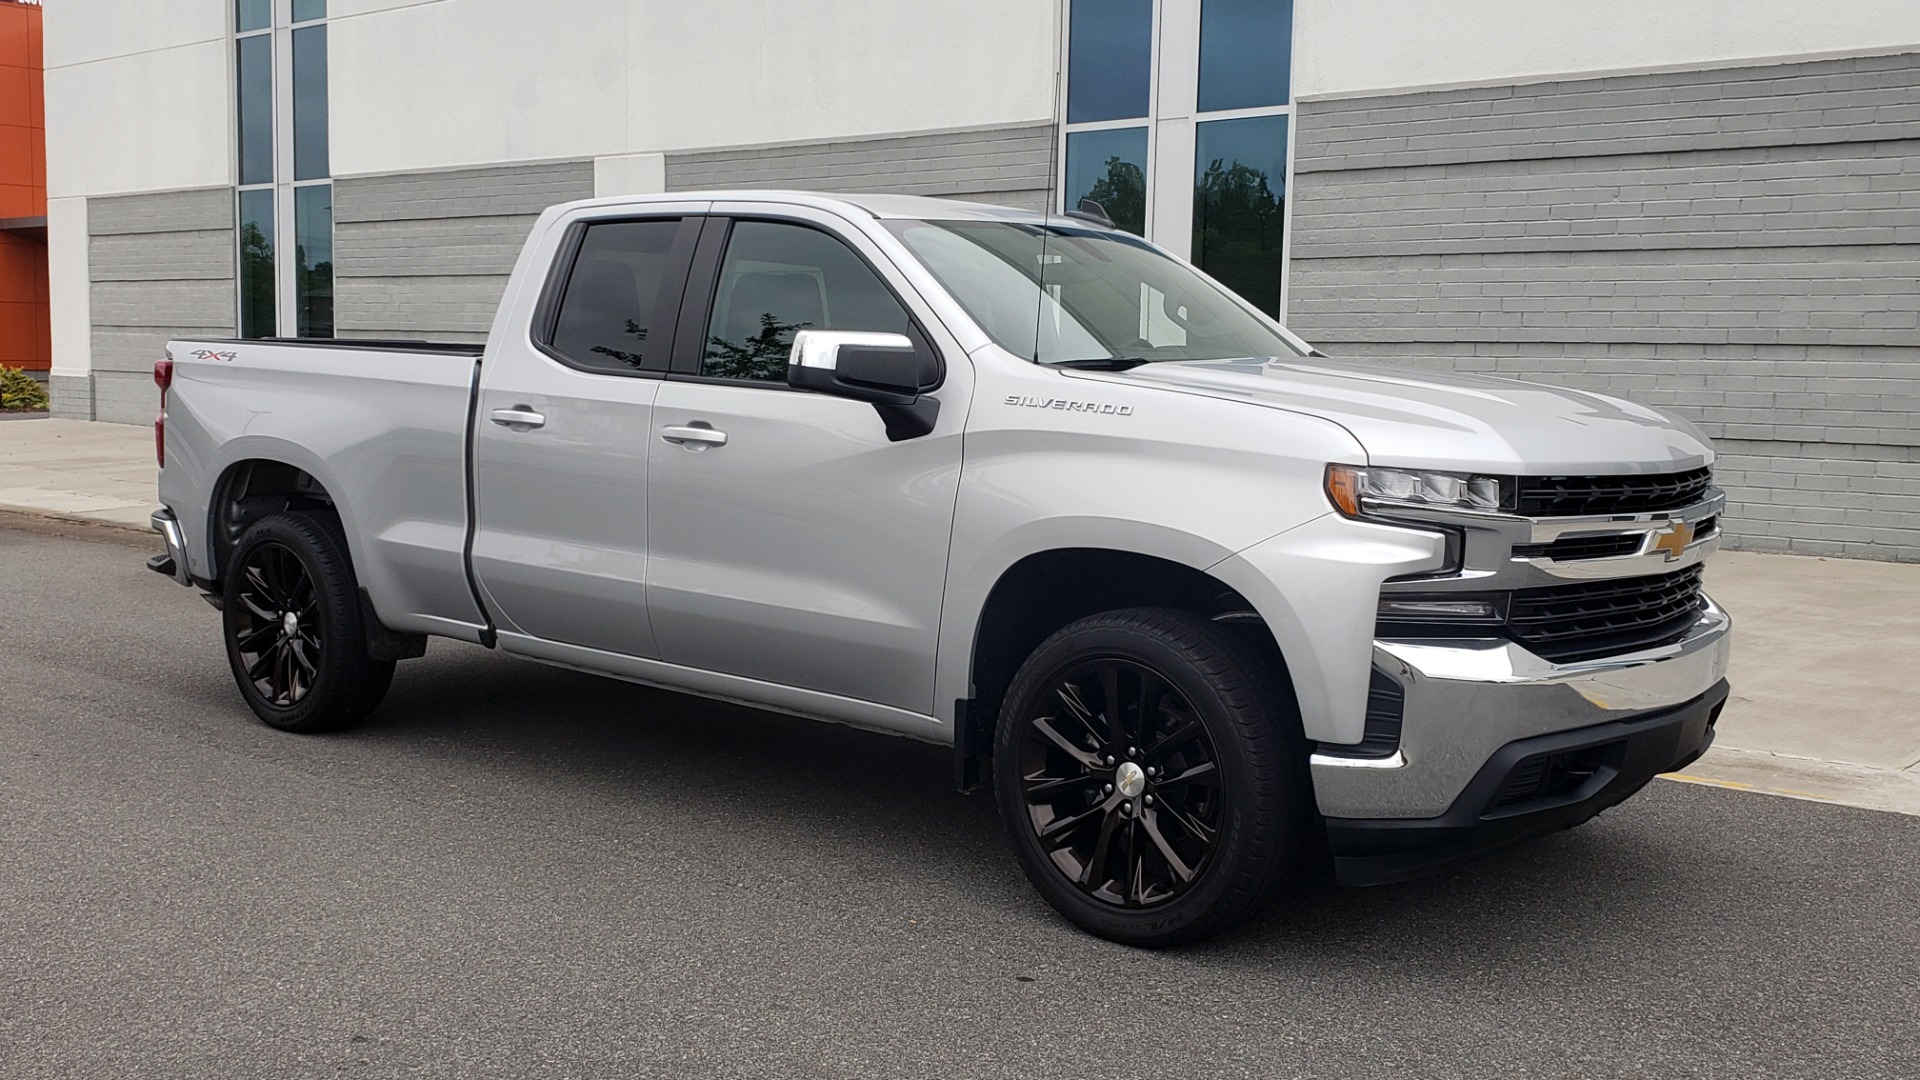 Used 2020 Chevrolet SILVERADO 1500 LT 4WD DOUBLECAB 147 WB / 5.3L V8 / BEDLINER / REARVIEW for sale $41,995 at Formula Imports in Charlotte NC 28227 5